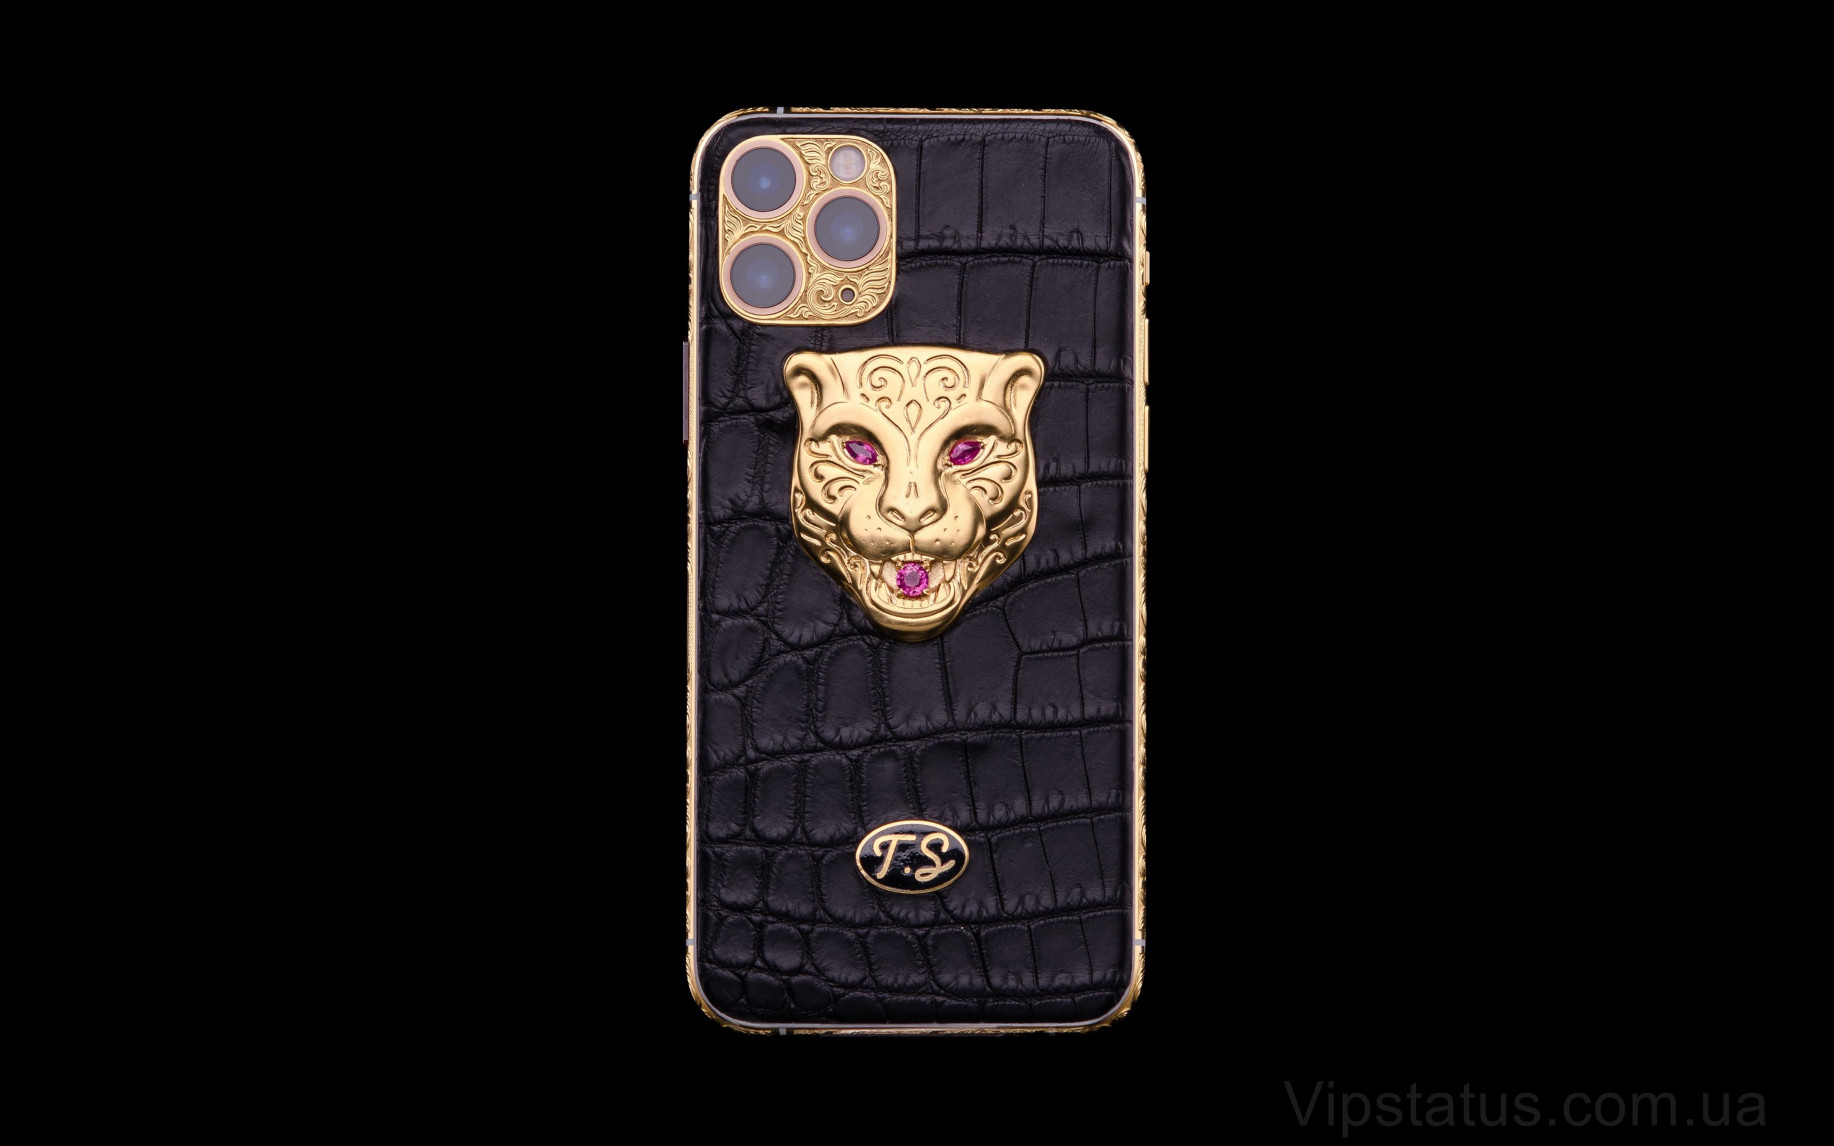 Elite Gucci Tiger IPHONE 11 PRO 512 GB Gucci Tiger IPHONE 11 PRO 512 GB image 3